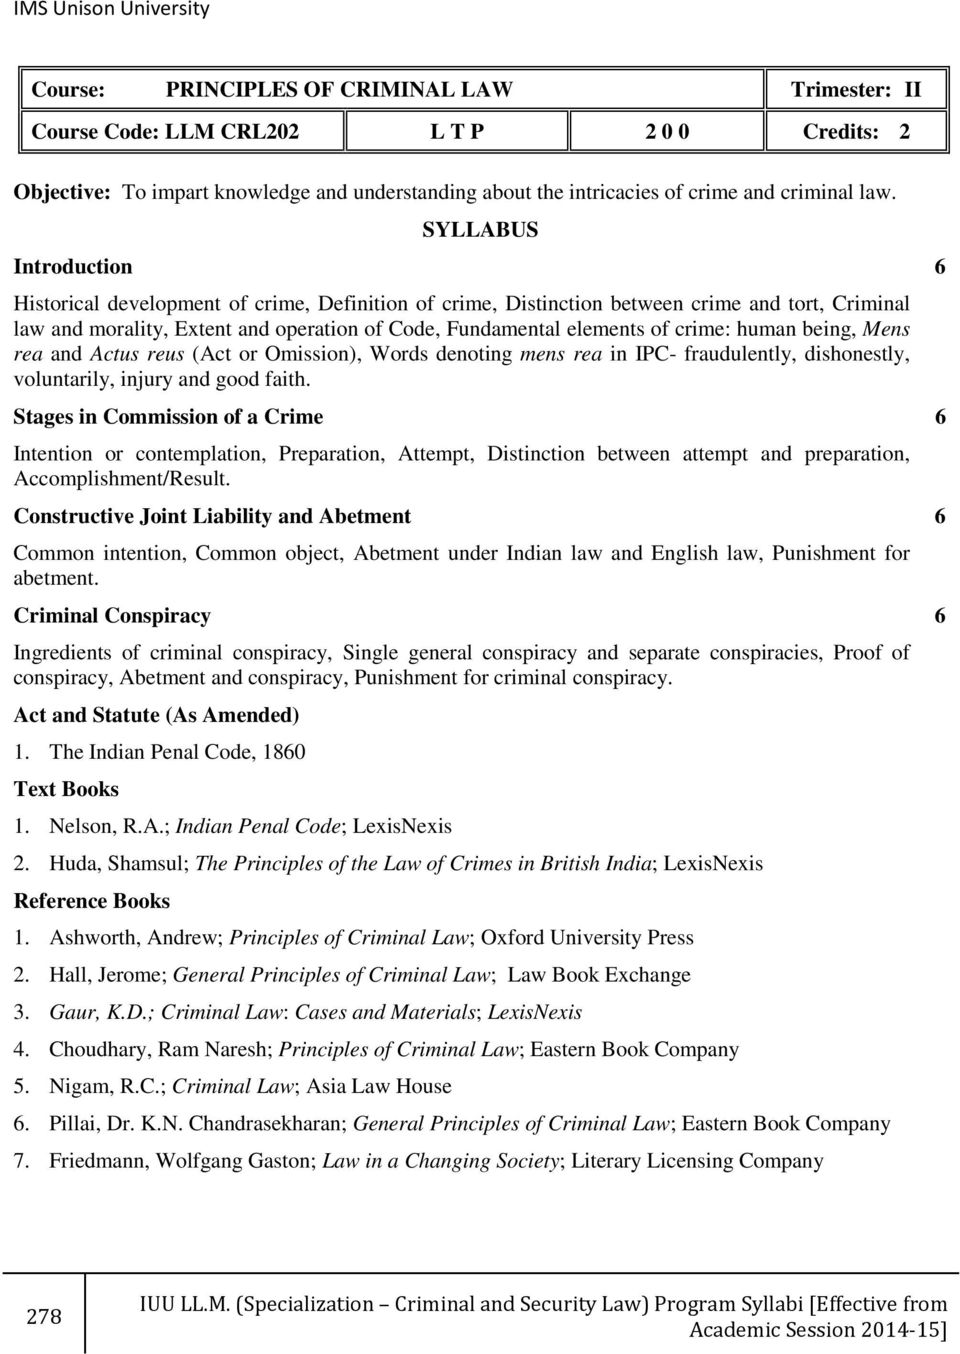 law and society vago and nelson pdf